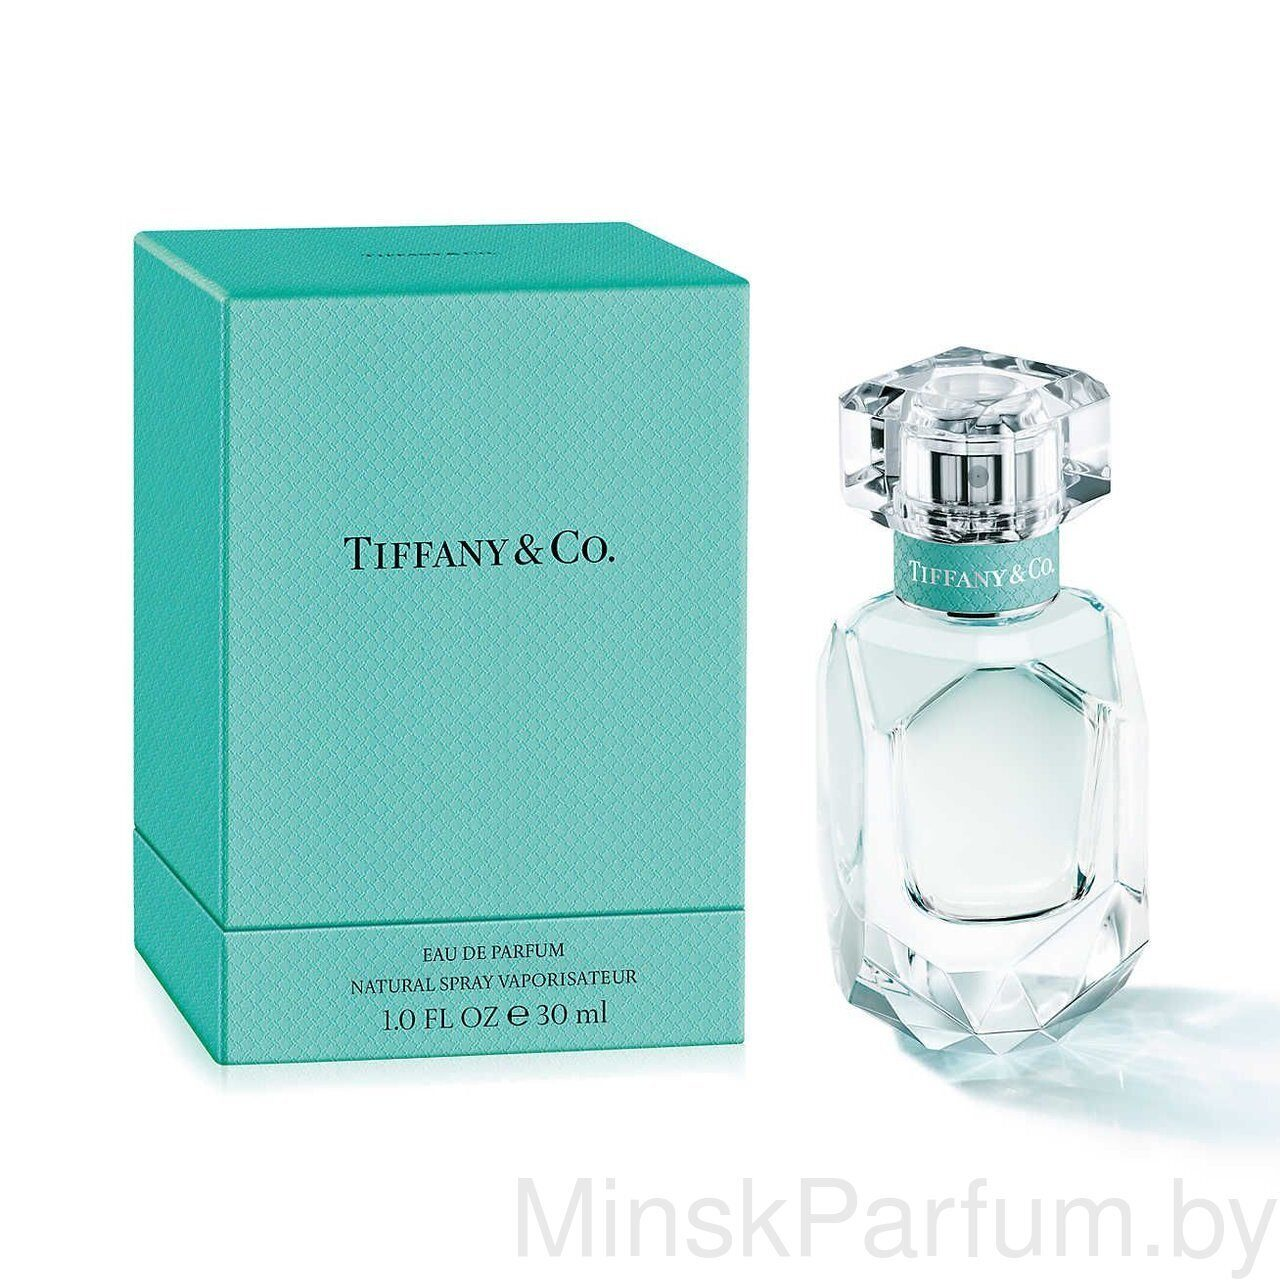 Tiffany & Co Eau de Parfum (LUXURY Orig.Pack!)